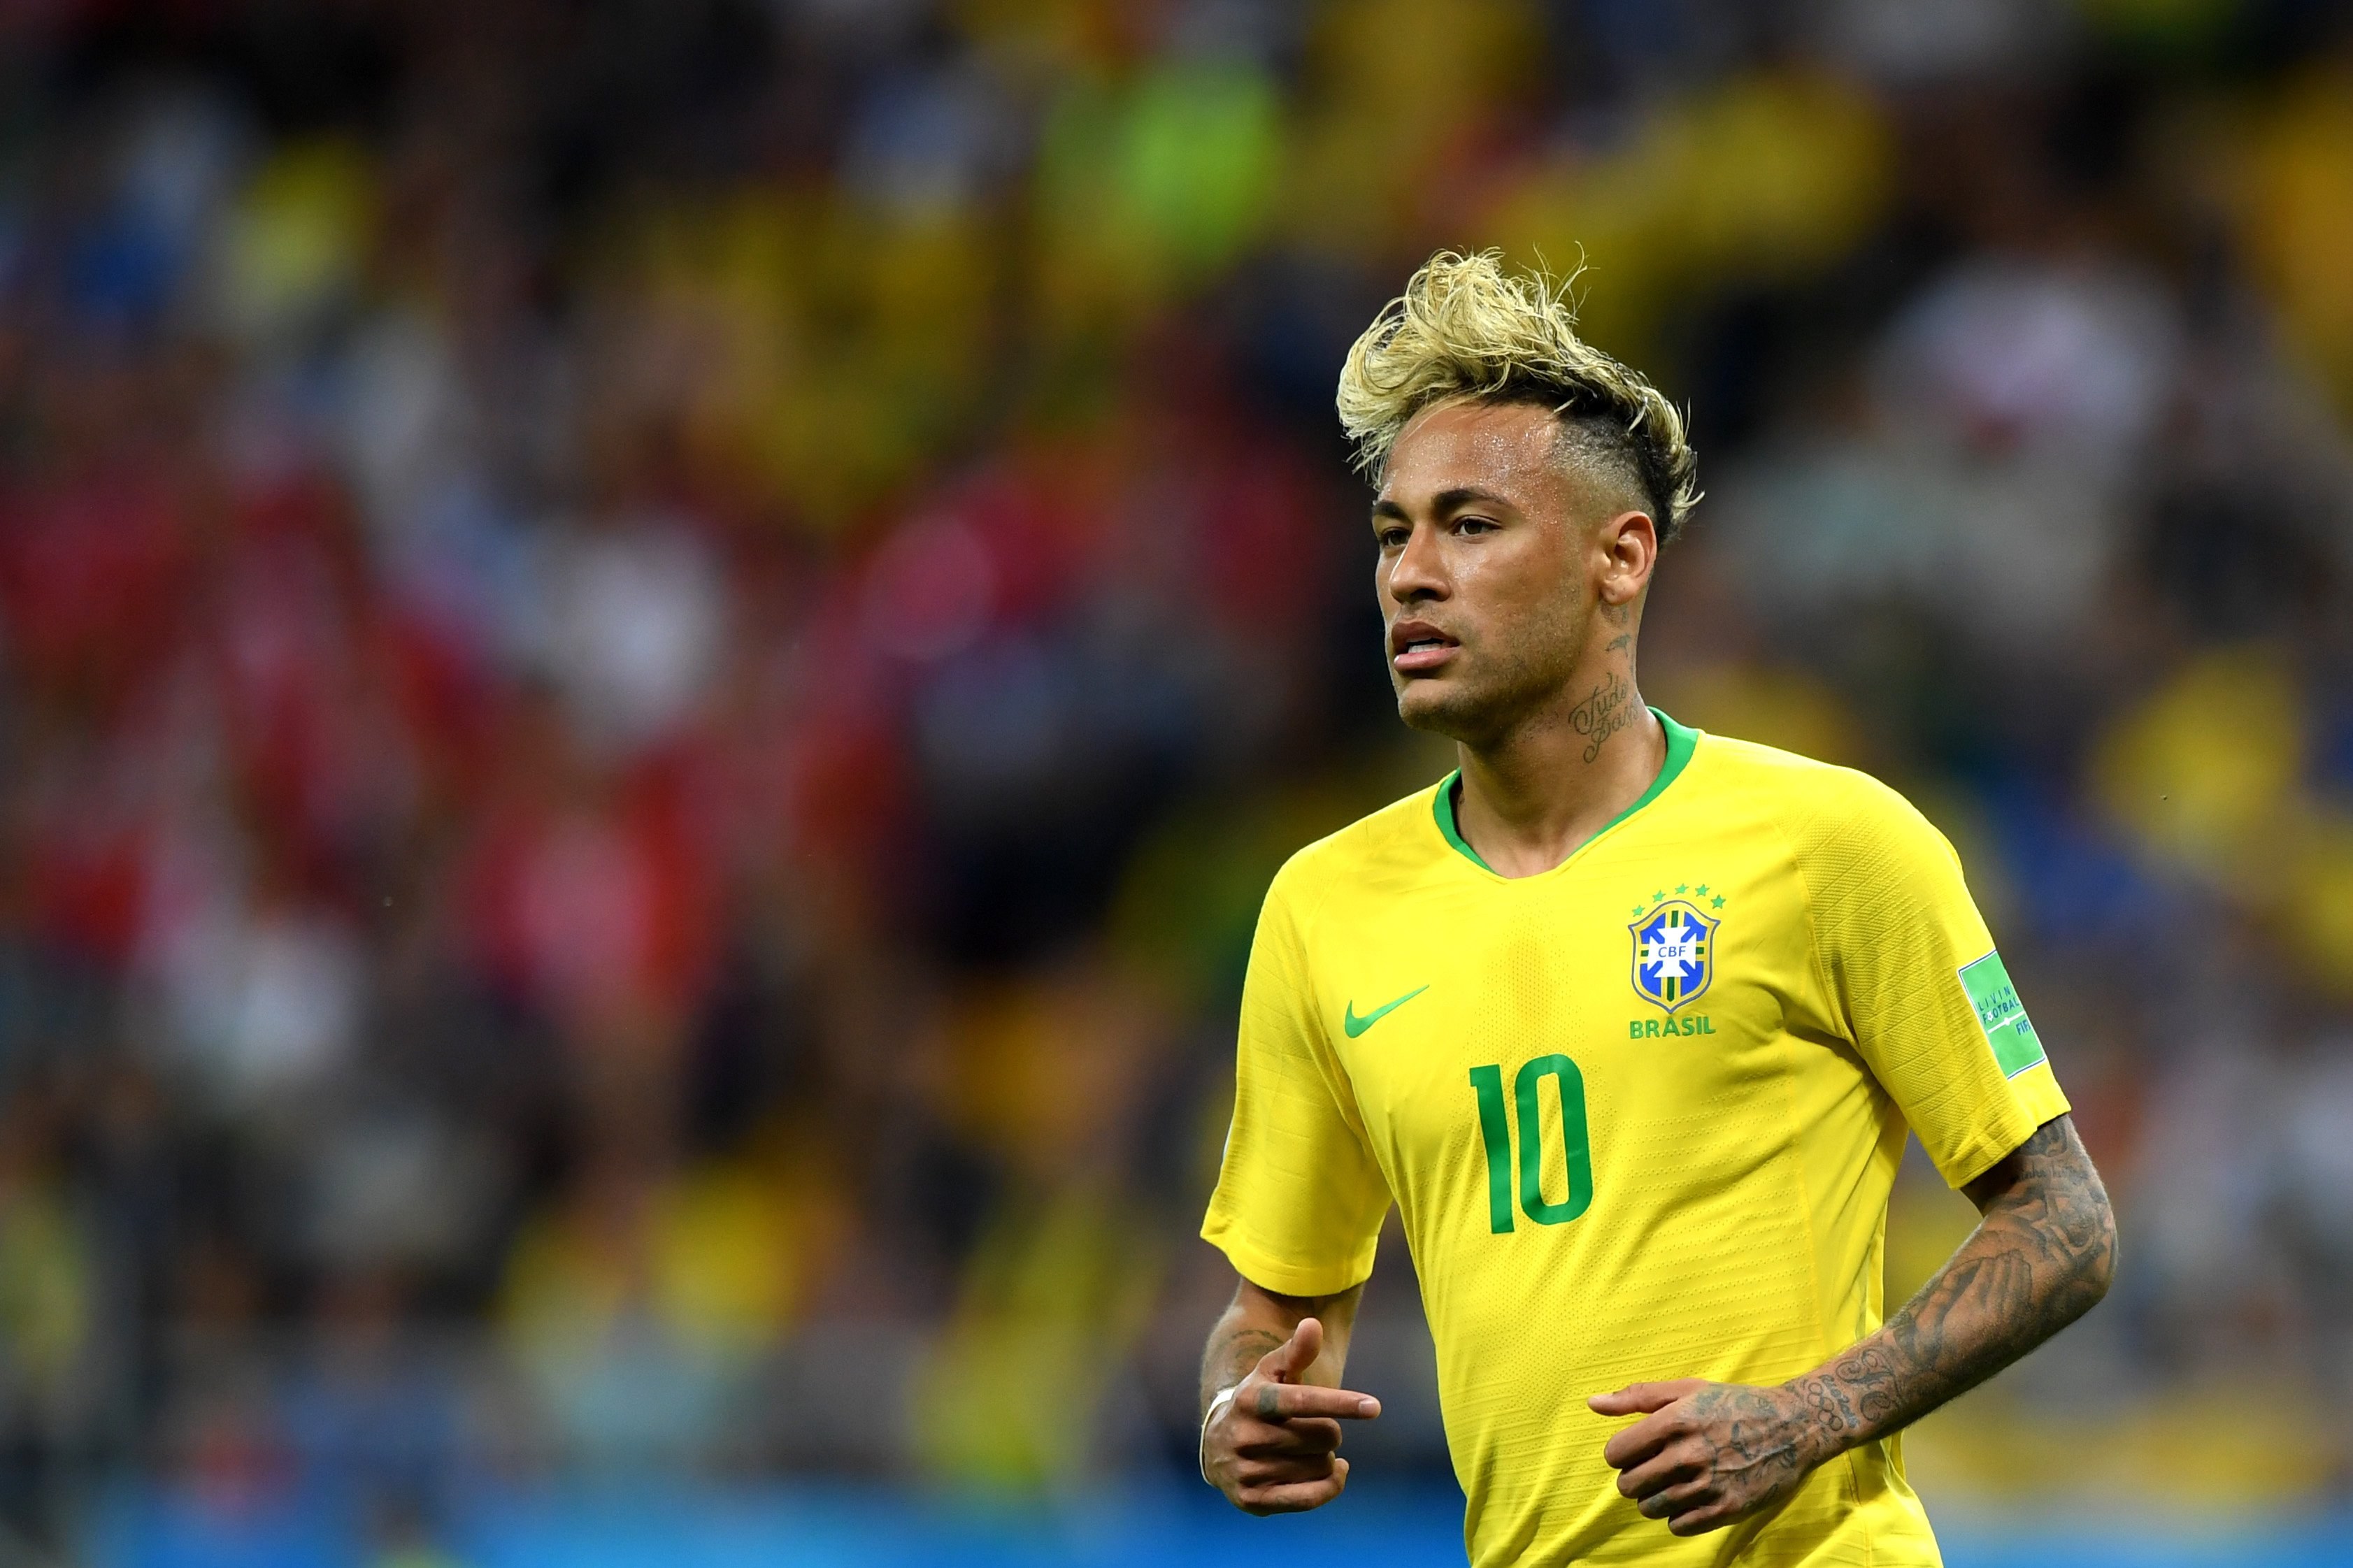 Neymar After His Failed World Cup Attempt